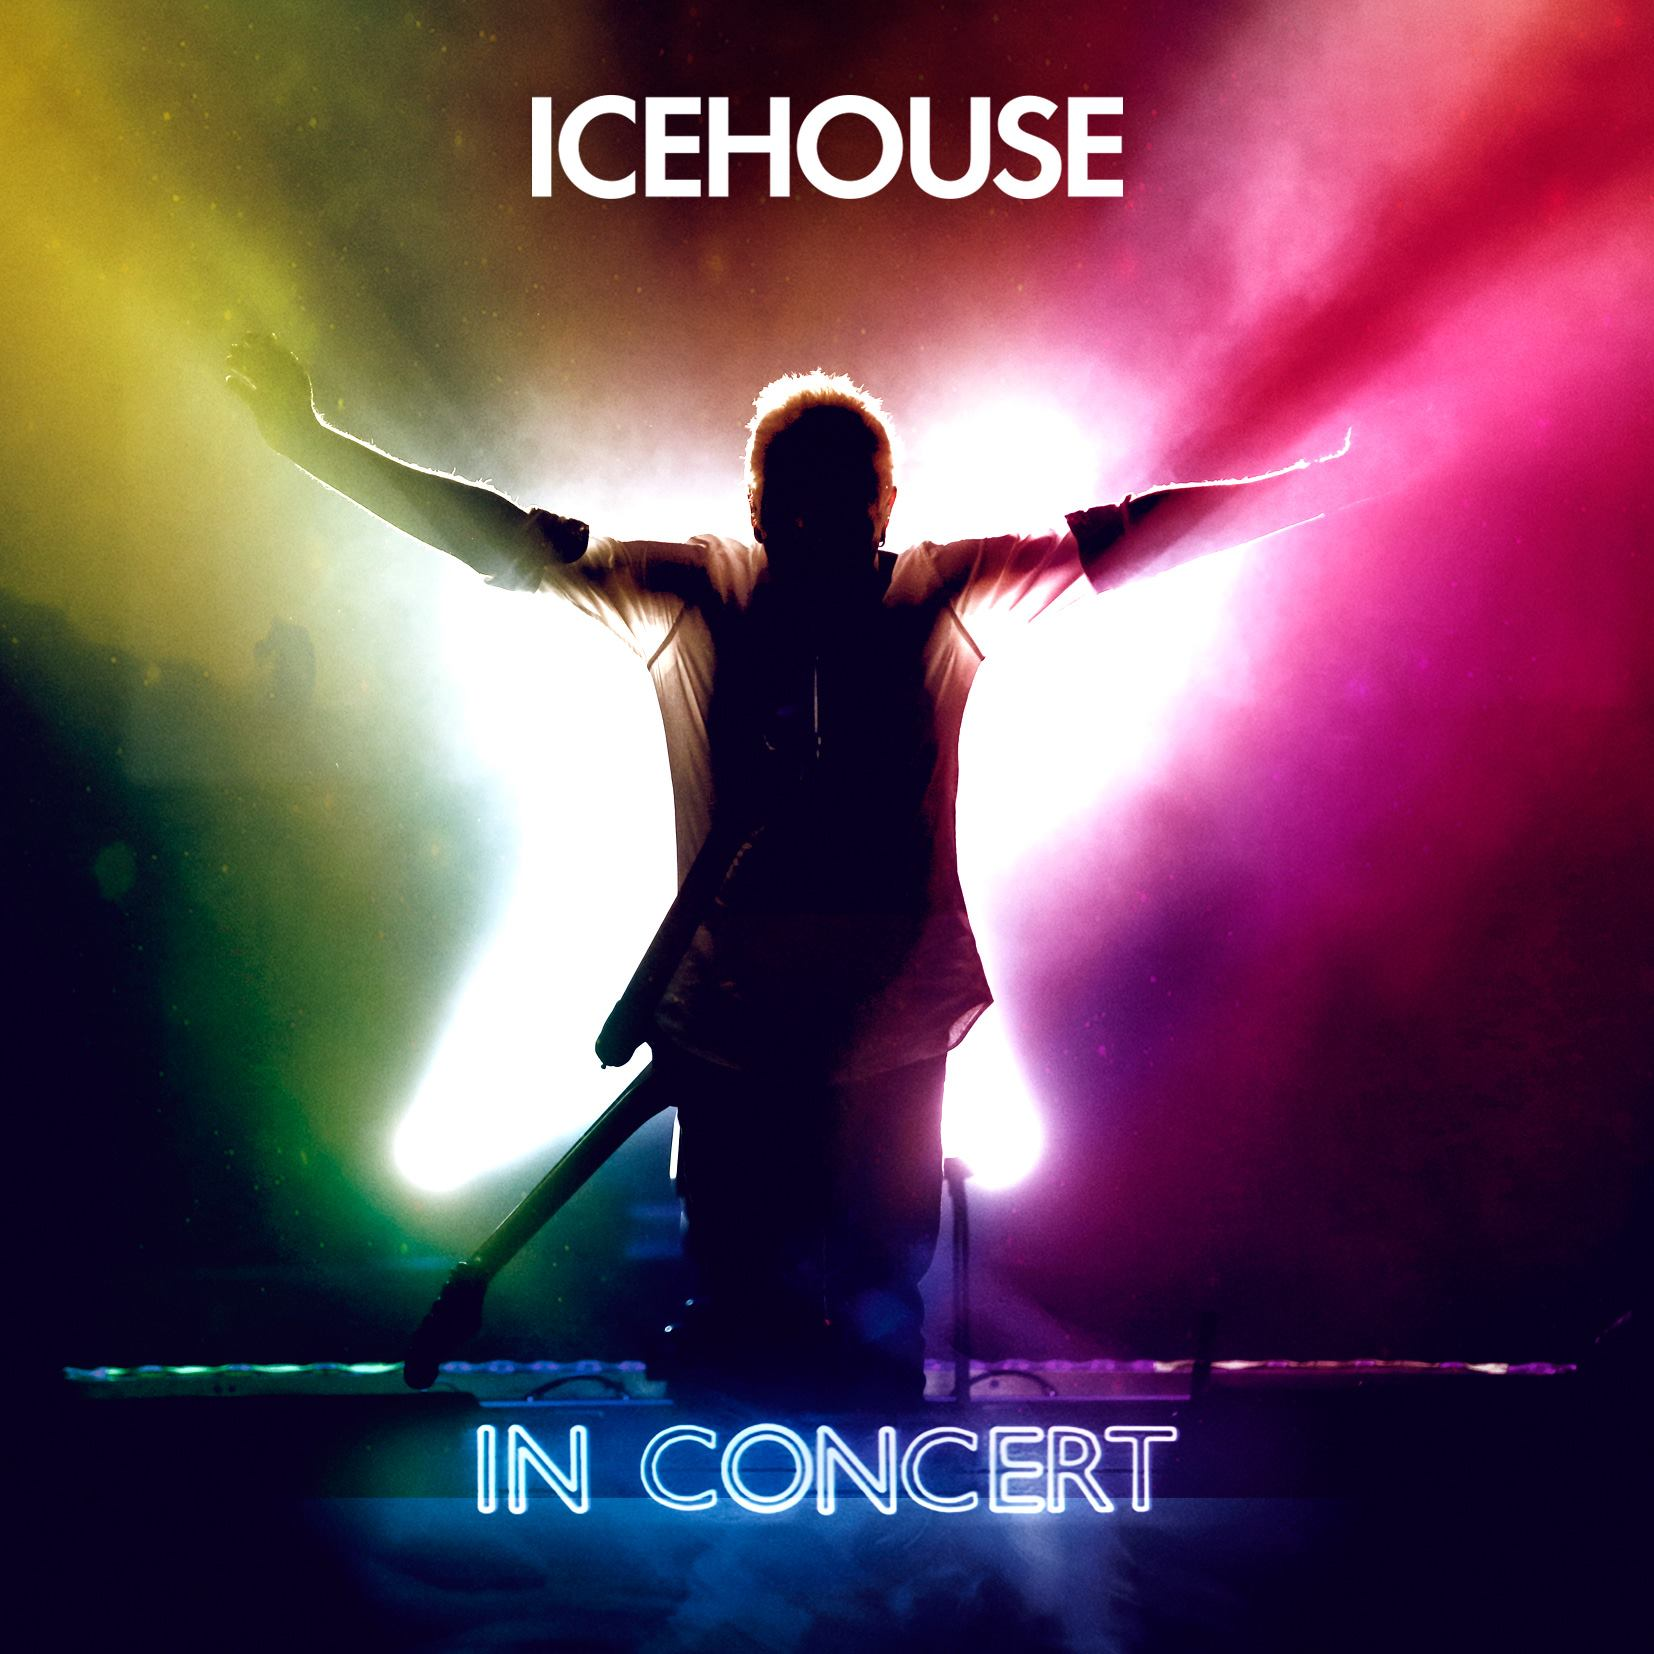 Icehouse in Concert album mastered by Steve Smart at Studios 301